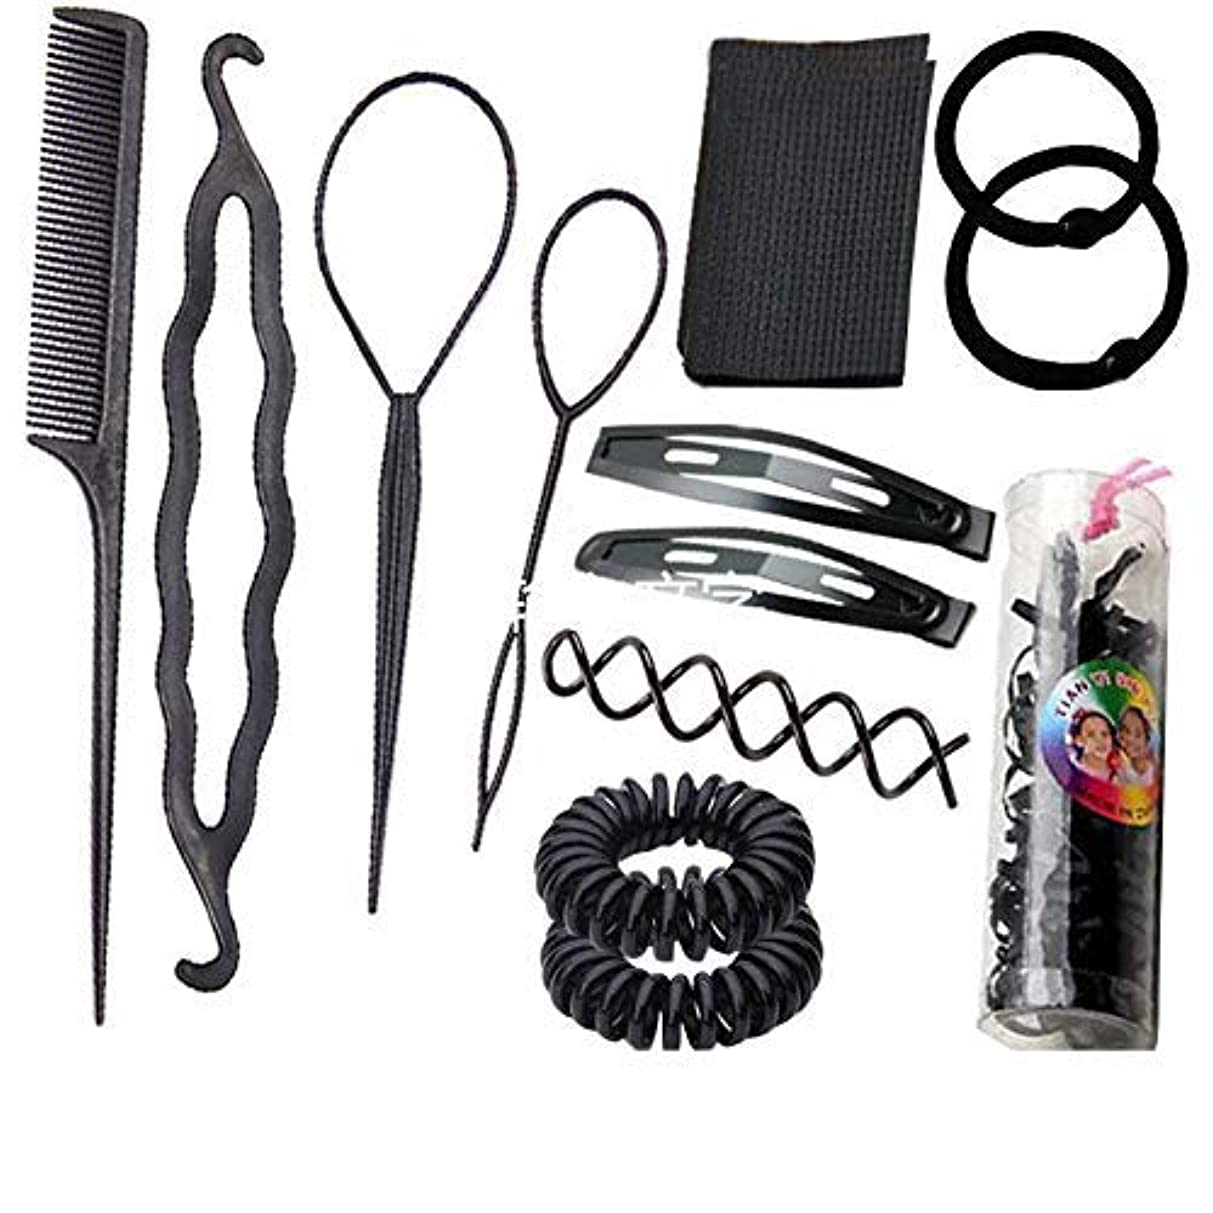 哺乳類ラッチ確立1 Set Black 13 in 1 Hair Style Making Accessories Kits Hair Comb Metal Hairpins Hair Tools Hair Ropes Fringes...